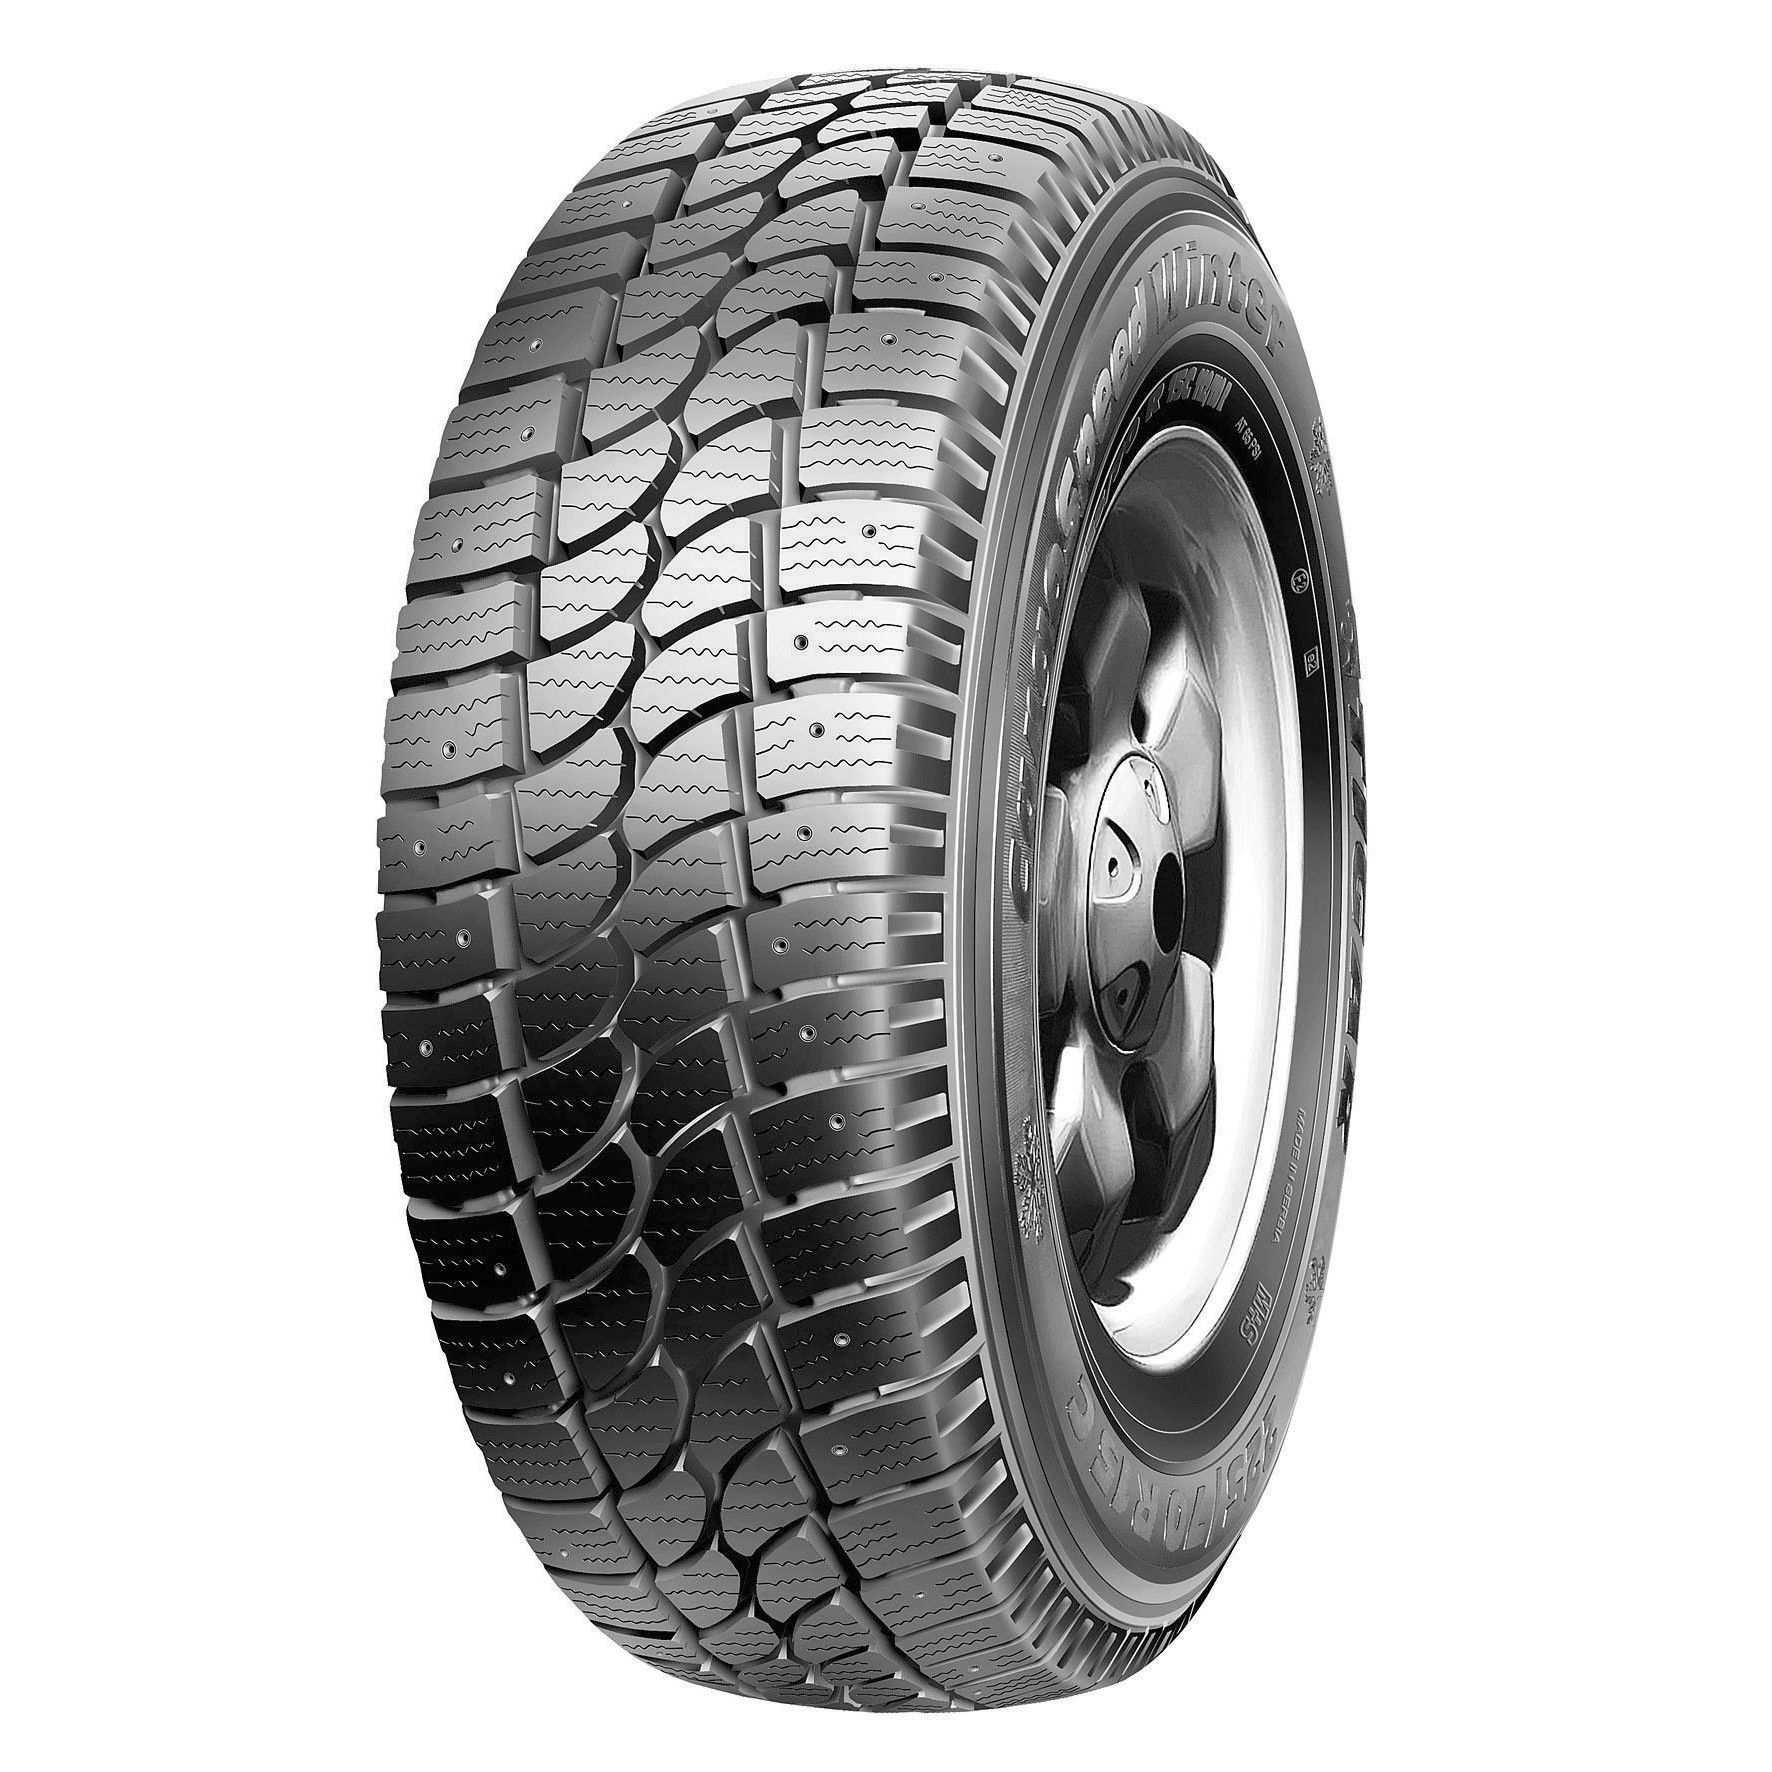 Anvelopa Iarna TIGAR CARGO SPEED WINTER 235/65R16C 115/113R